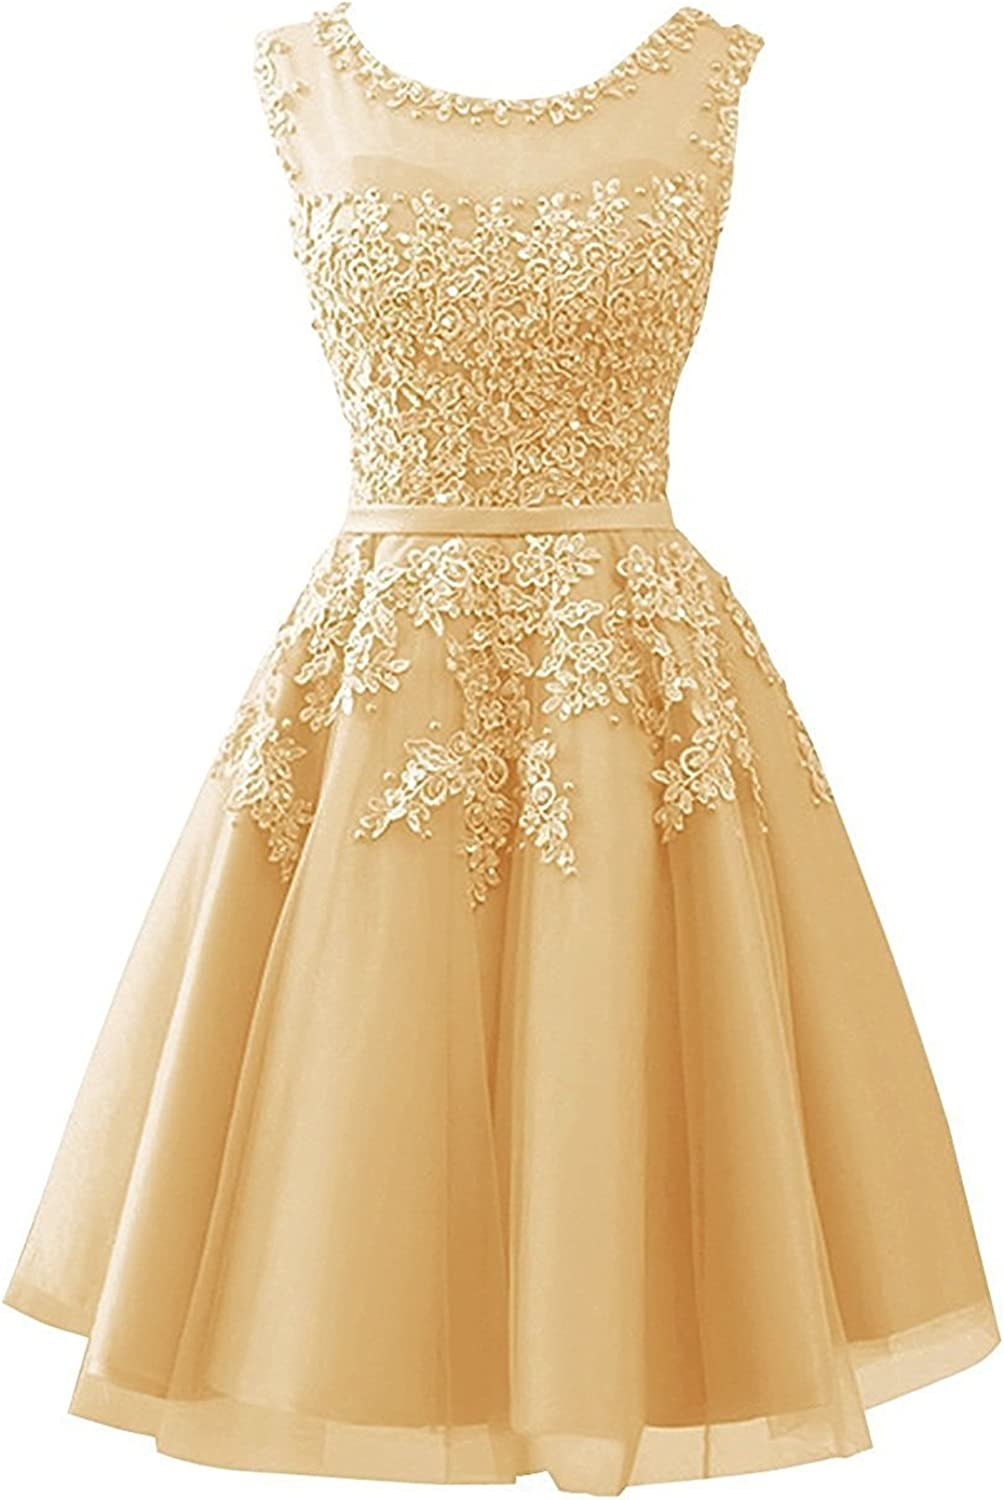 BRL MALL Womens Tulle Short Junior Homecoming Dress Lace Evening Gowns Brl19